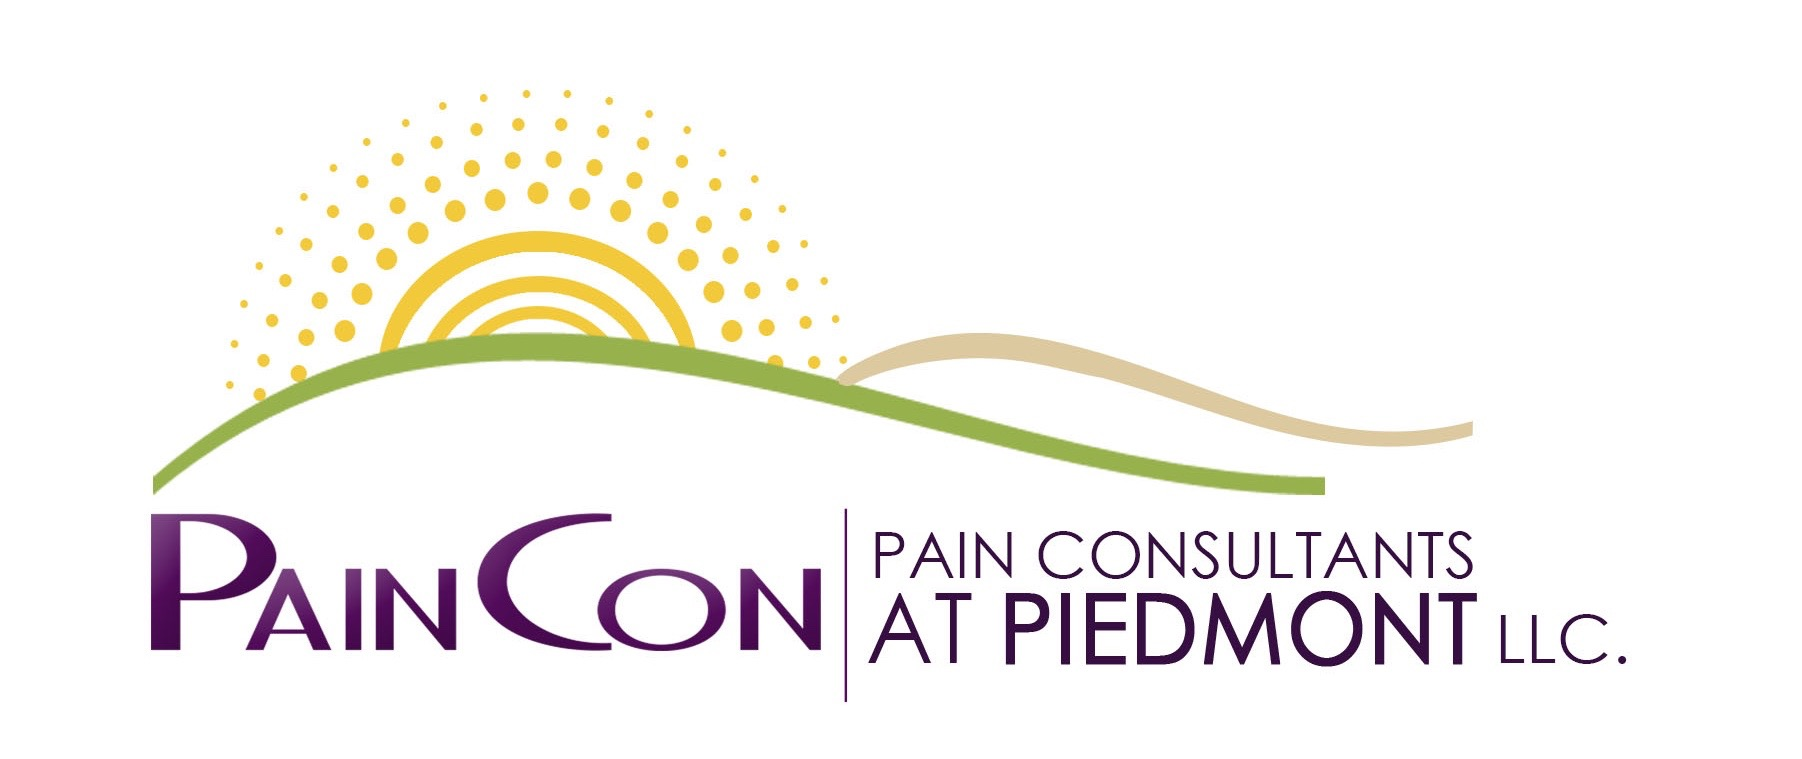 Pain Consultants at Piedmont